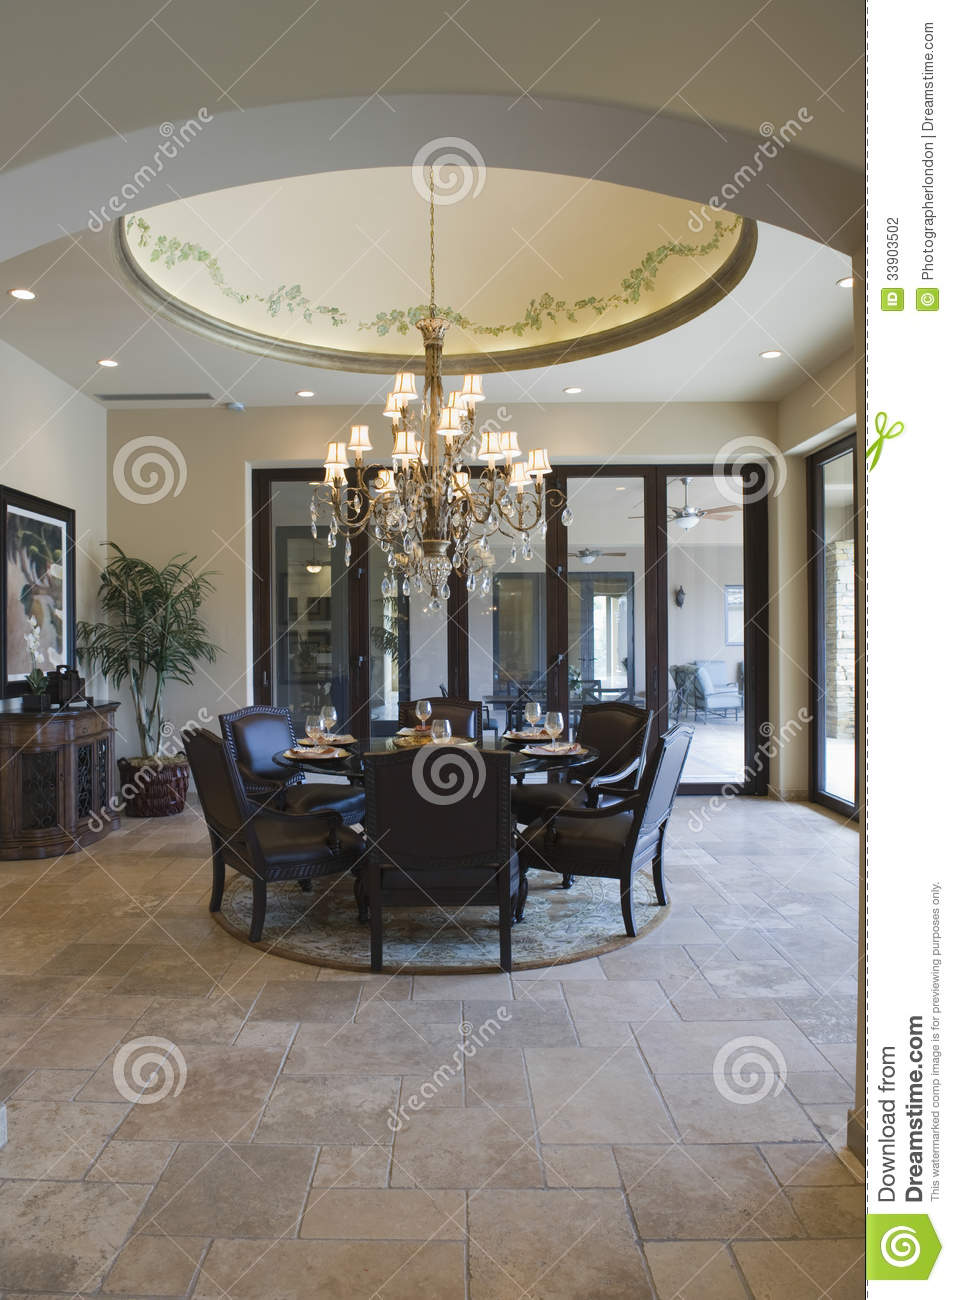 Circular Dining Table Stock Photo Image Of Architecture 33903502